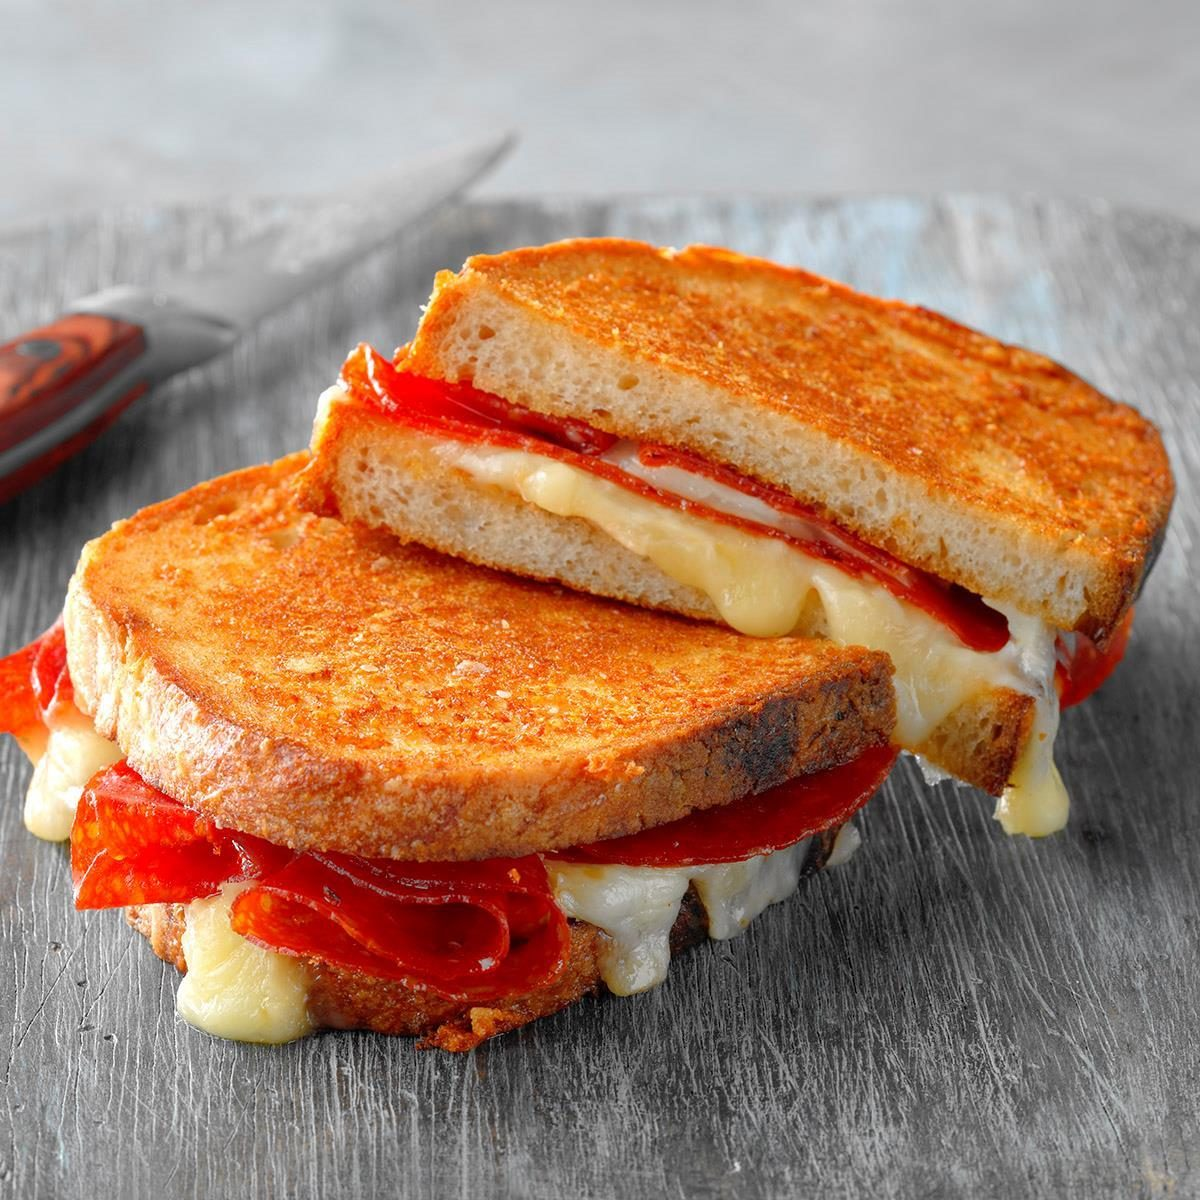 Wednesday: Grilled Cheese and Pepperoni Sandwich